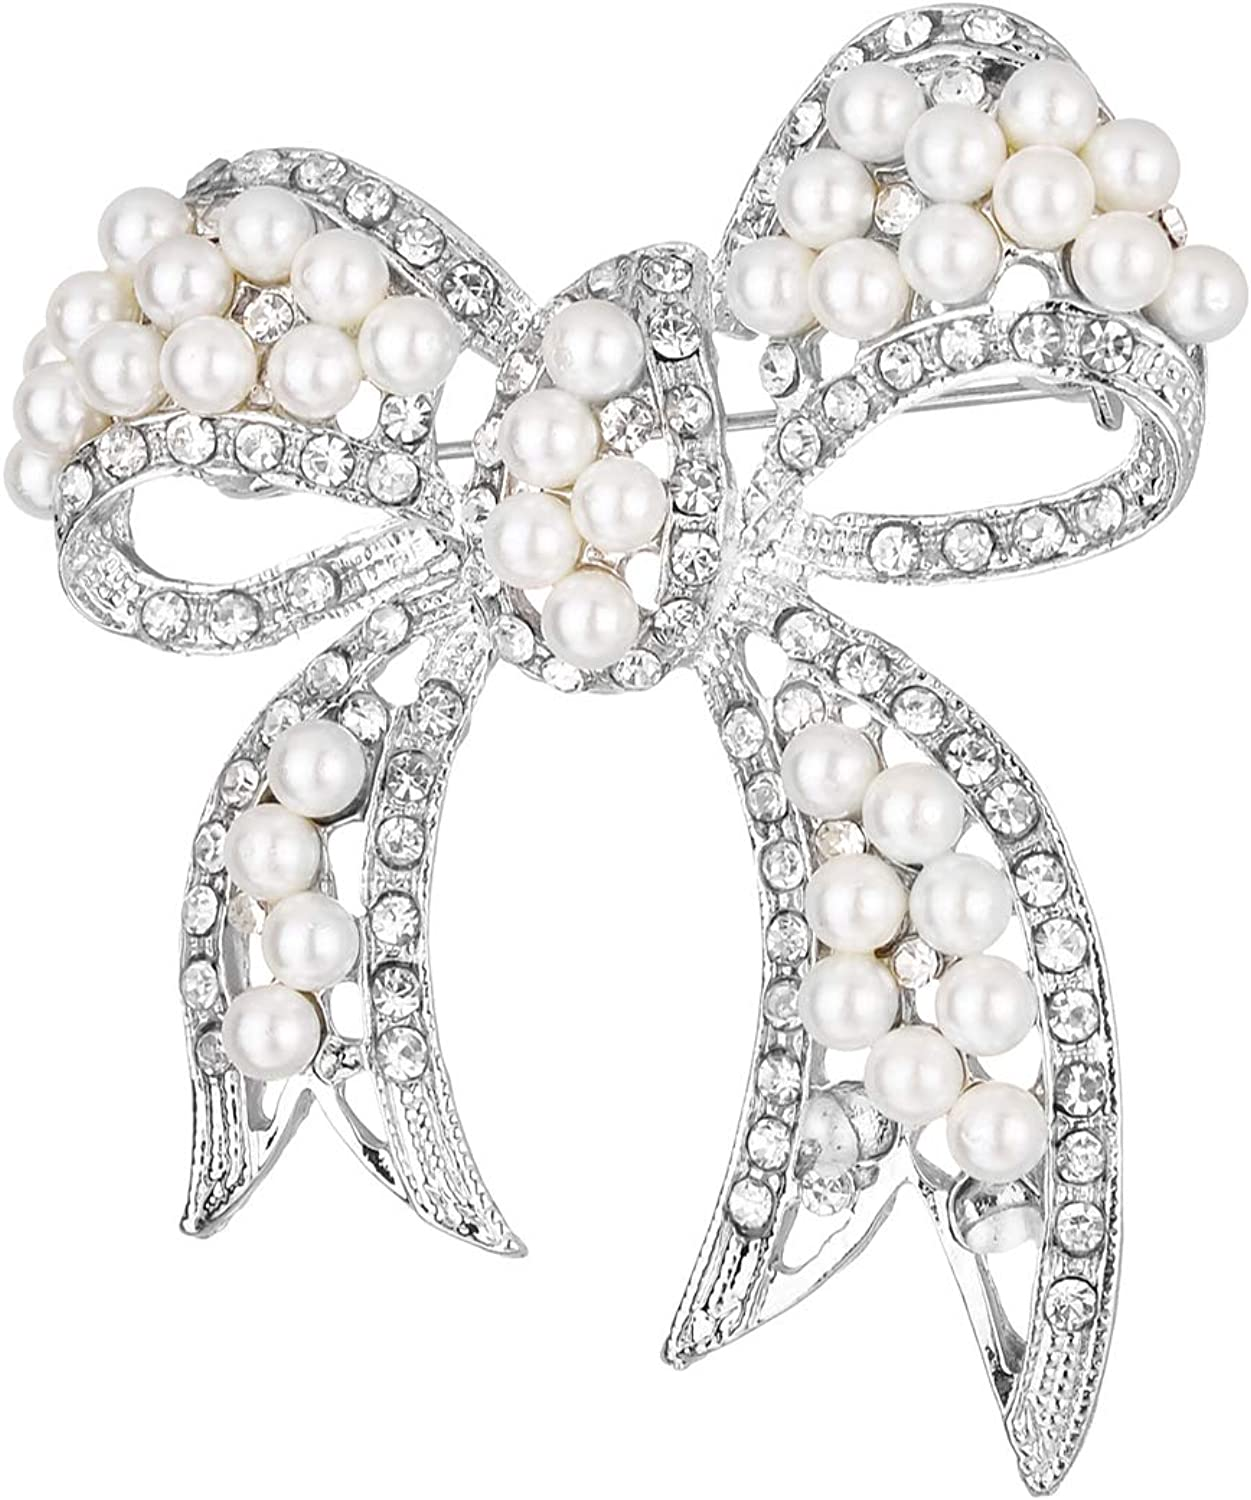 Jones New York Silver White Round Pearls Ribbon Clear Rhinestones Brooches and Pins